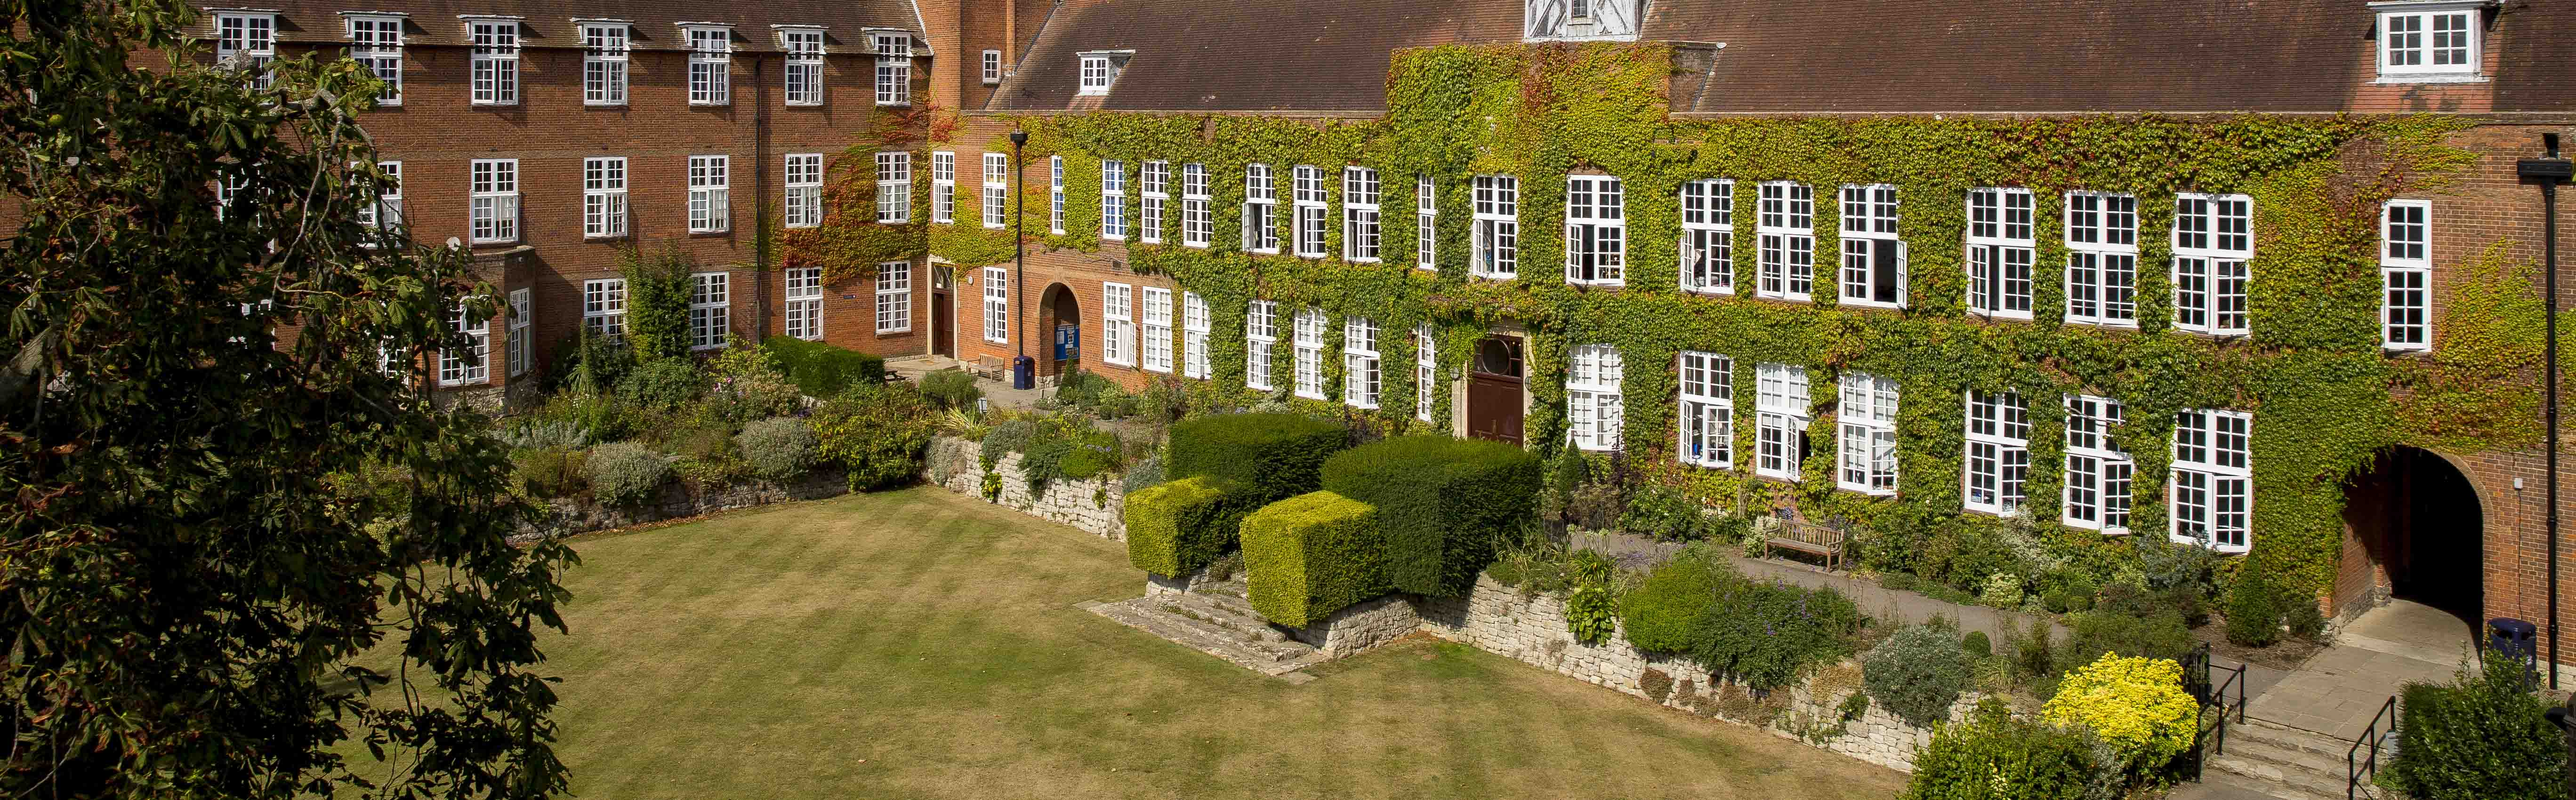 Sutton Valence School, Sutton Valence, Kent, England | Dickinson | British Boarding School Consulting